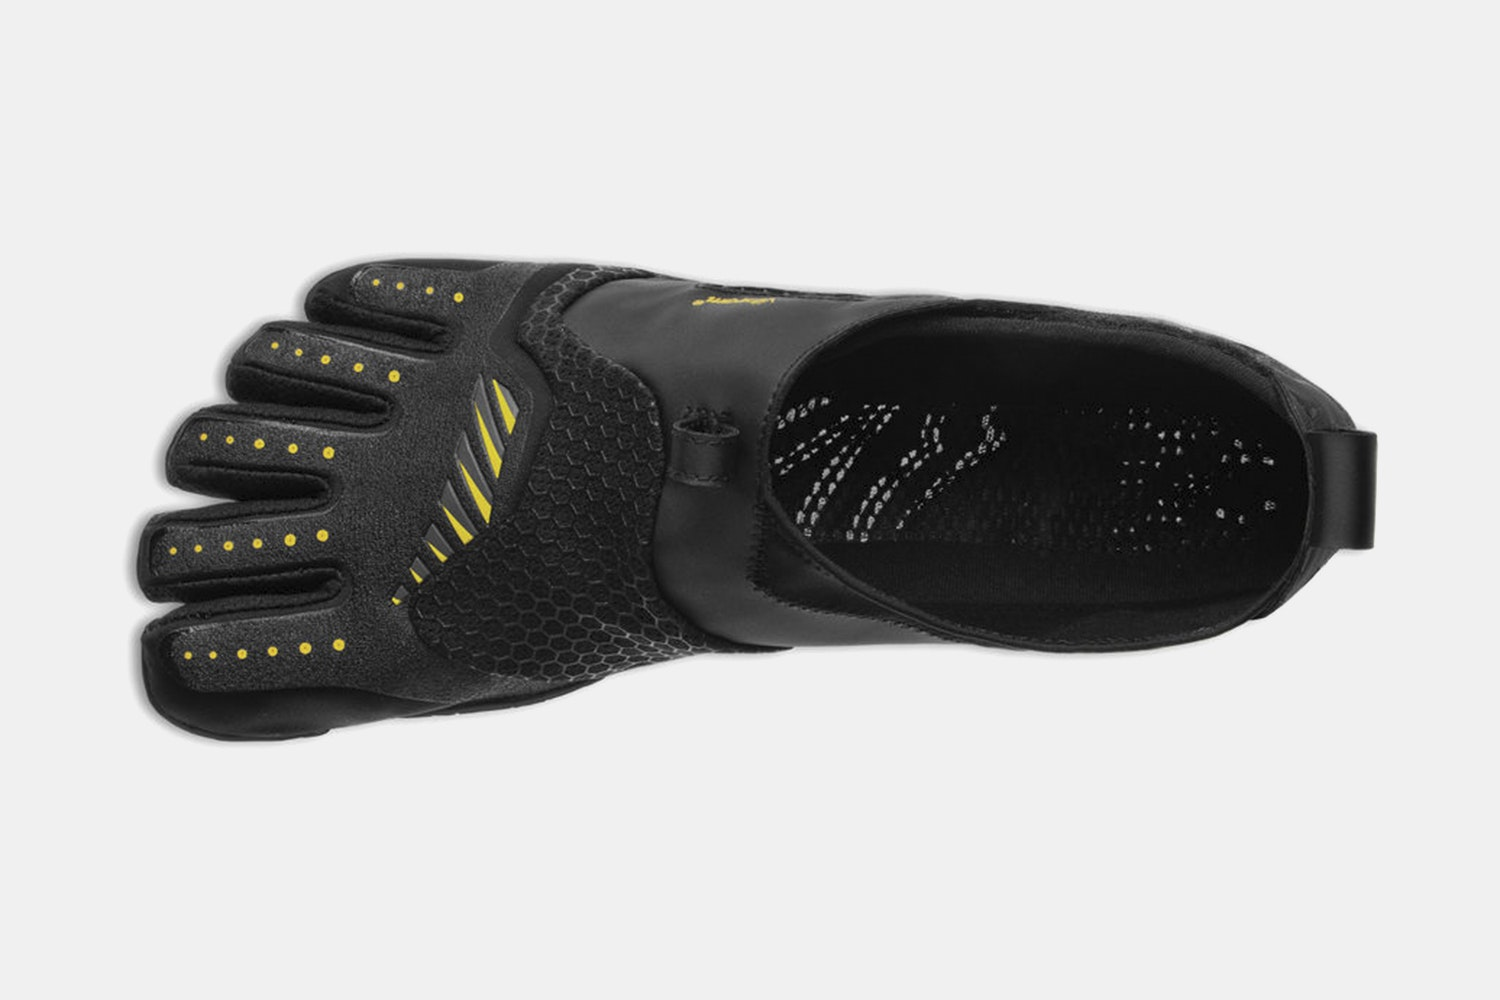 Vibram Five Fingers Signa Water Shoes